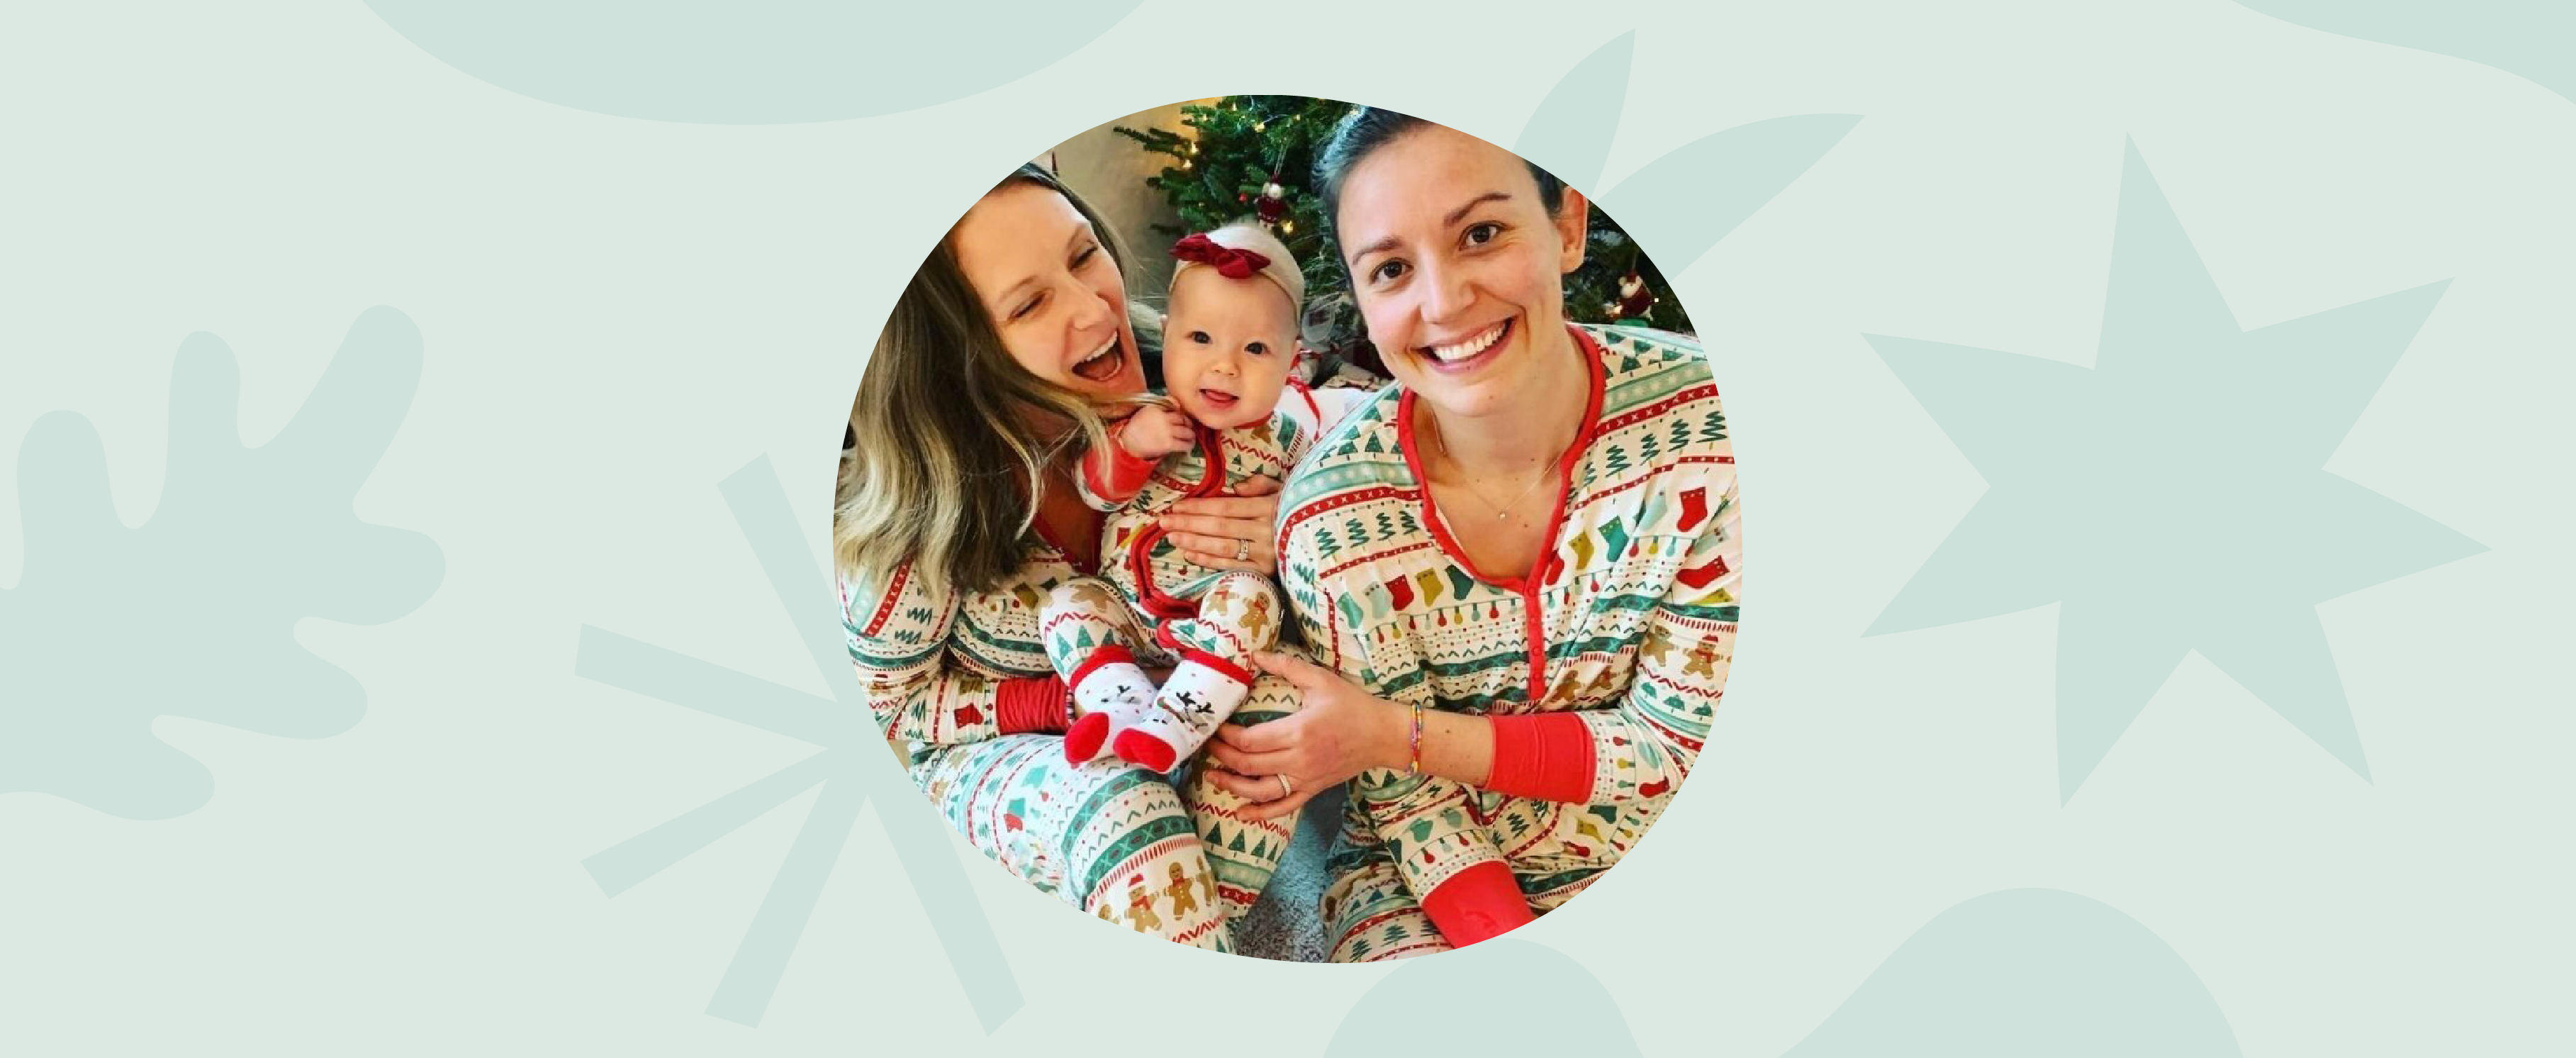 Allison's Maven Story: Inclusive Care and Pregnancy Support